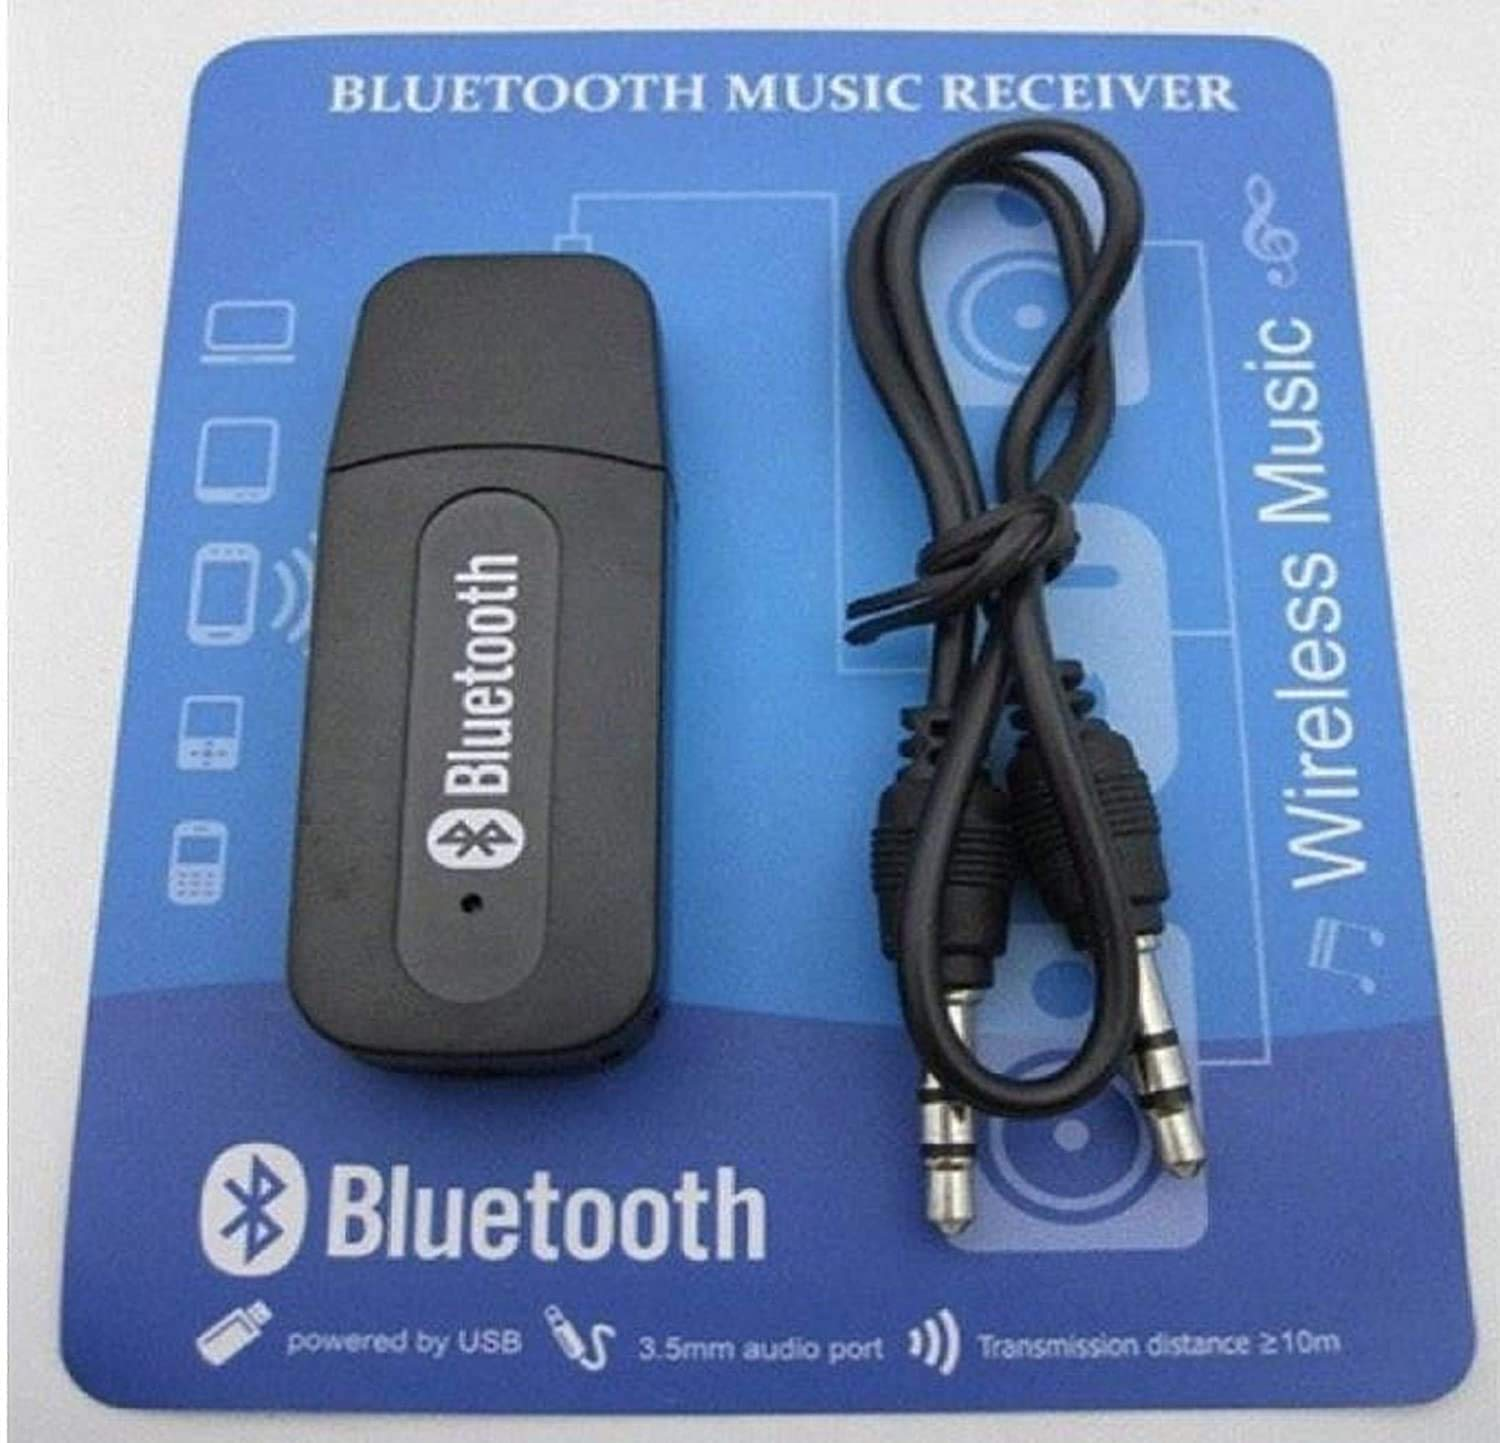 ICALL Universal Wireless USB Bluetooth Receiver Adapter Dongle for Home  Theatre Car Speakers MP10